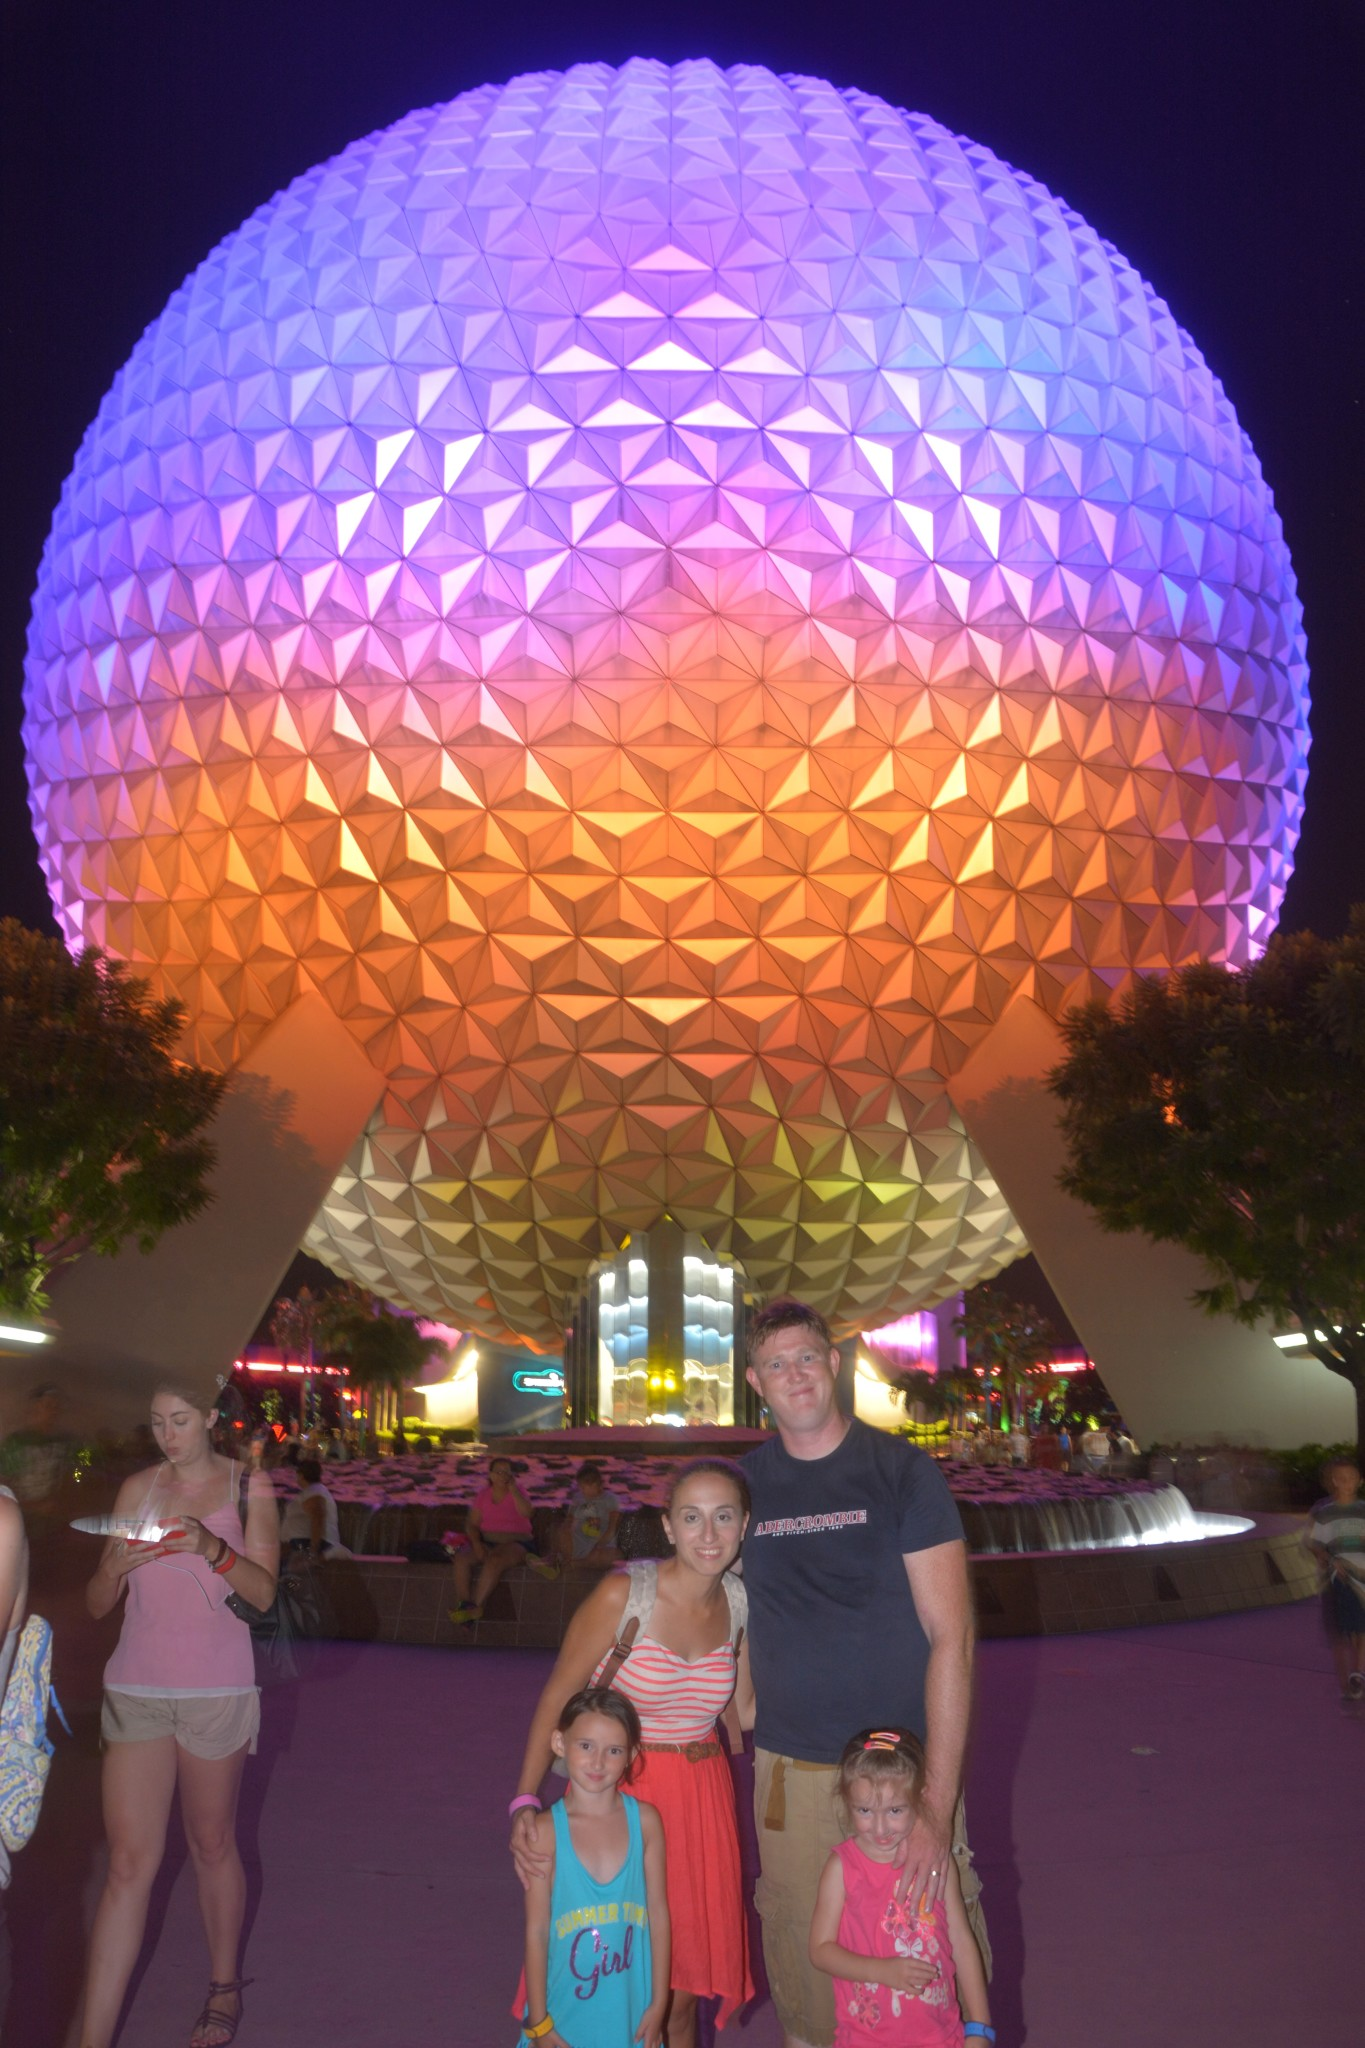 After the rain cleared late at Epcot